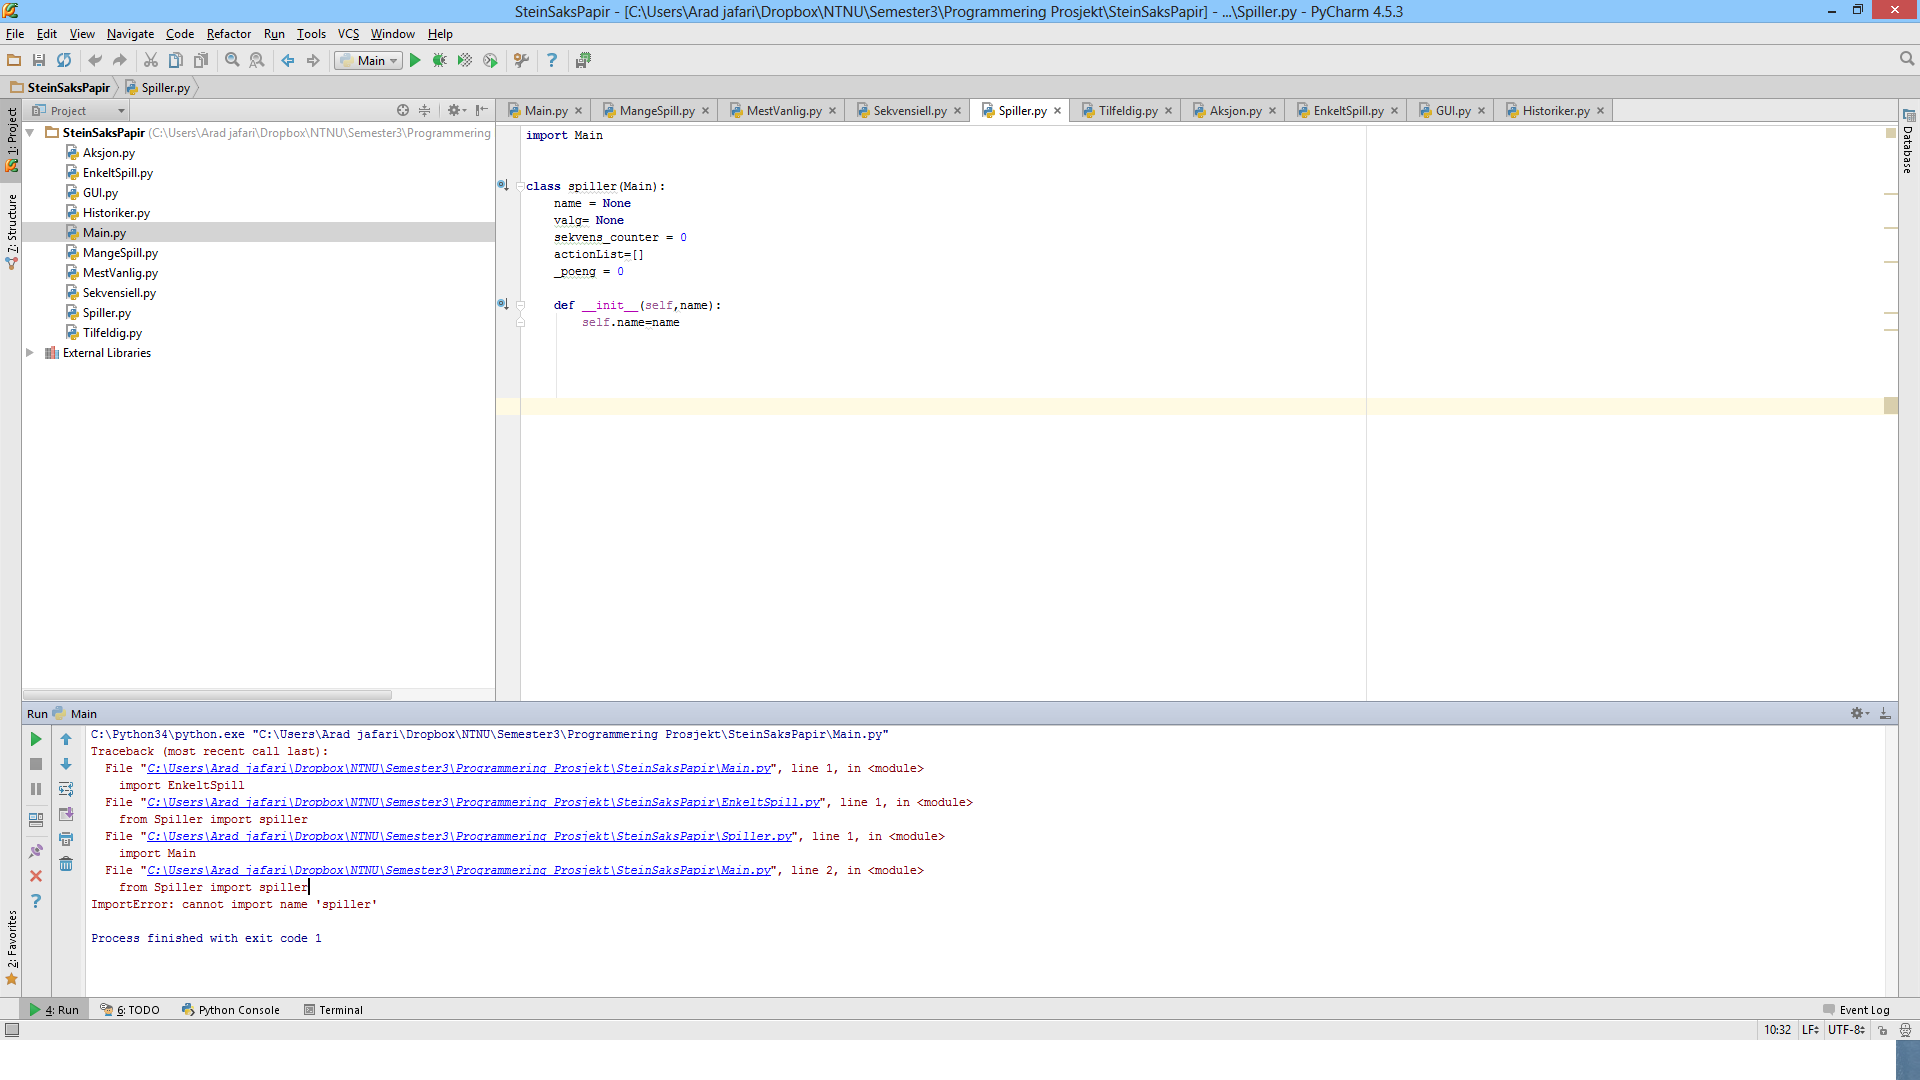 Solved: In Pycharm 4 5 I Get This Error: From Spiller Impo